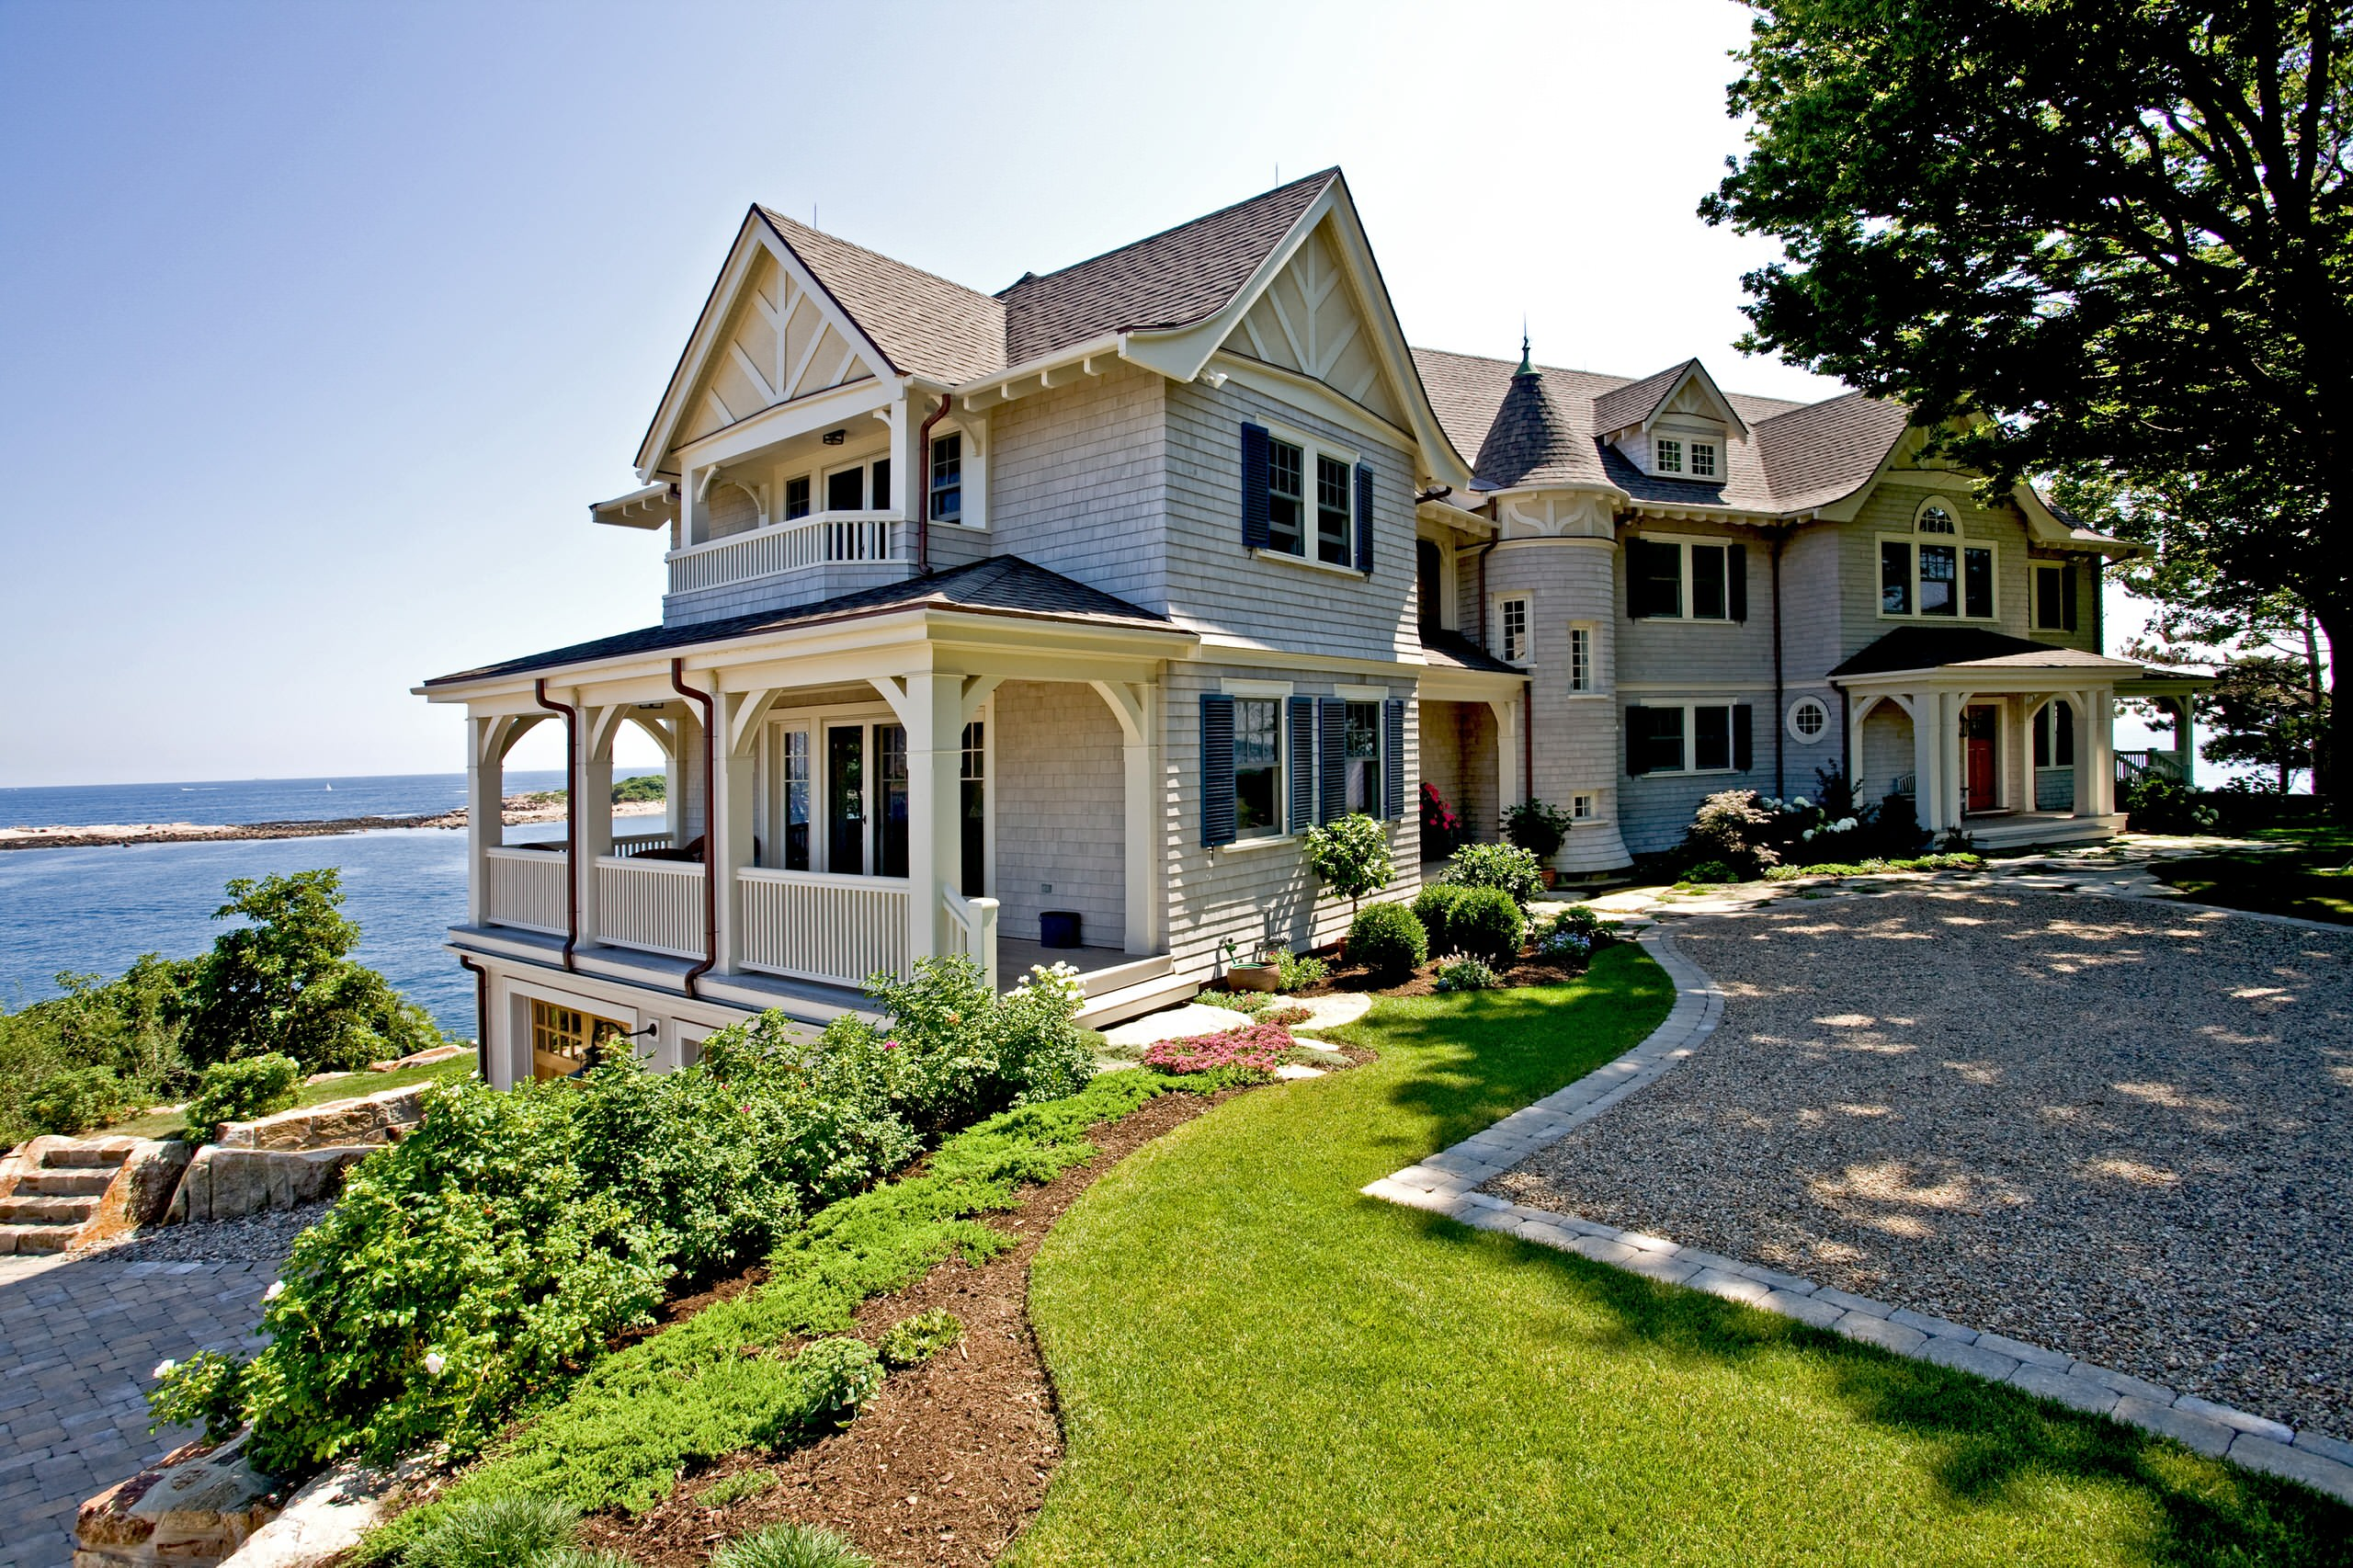 Natural cedar shake siding colors with square columns and white railings. White trim. Brown shingled roof. Brown stained wood doors. Gravel driveway. Beautiful waterfront custom home.